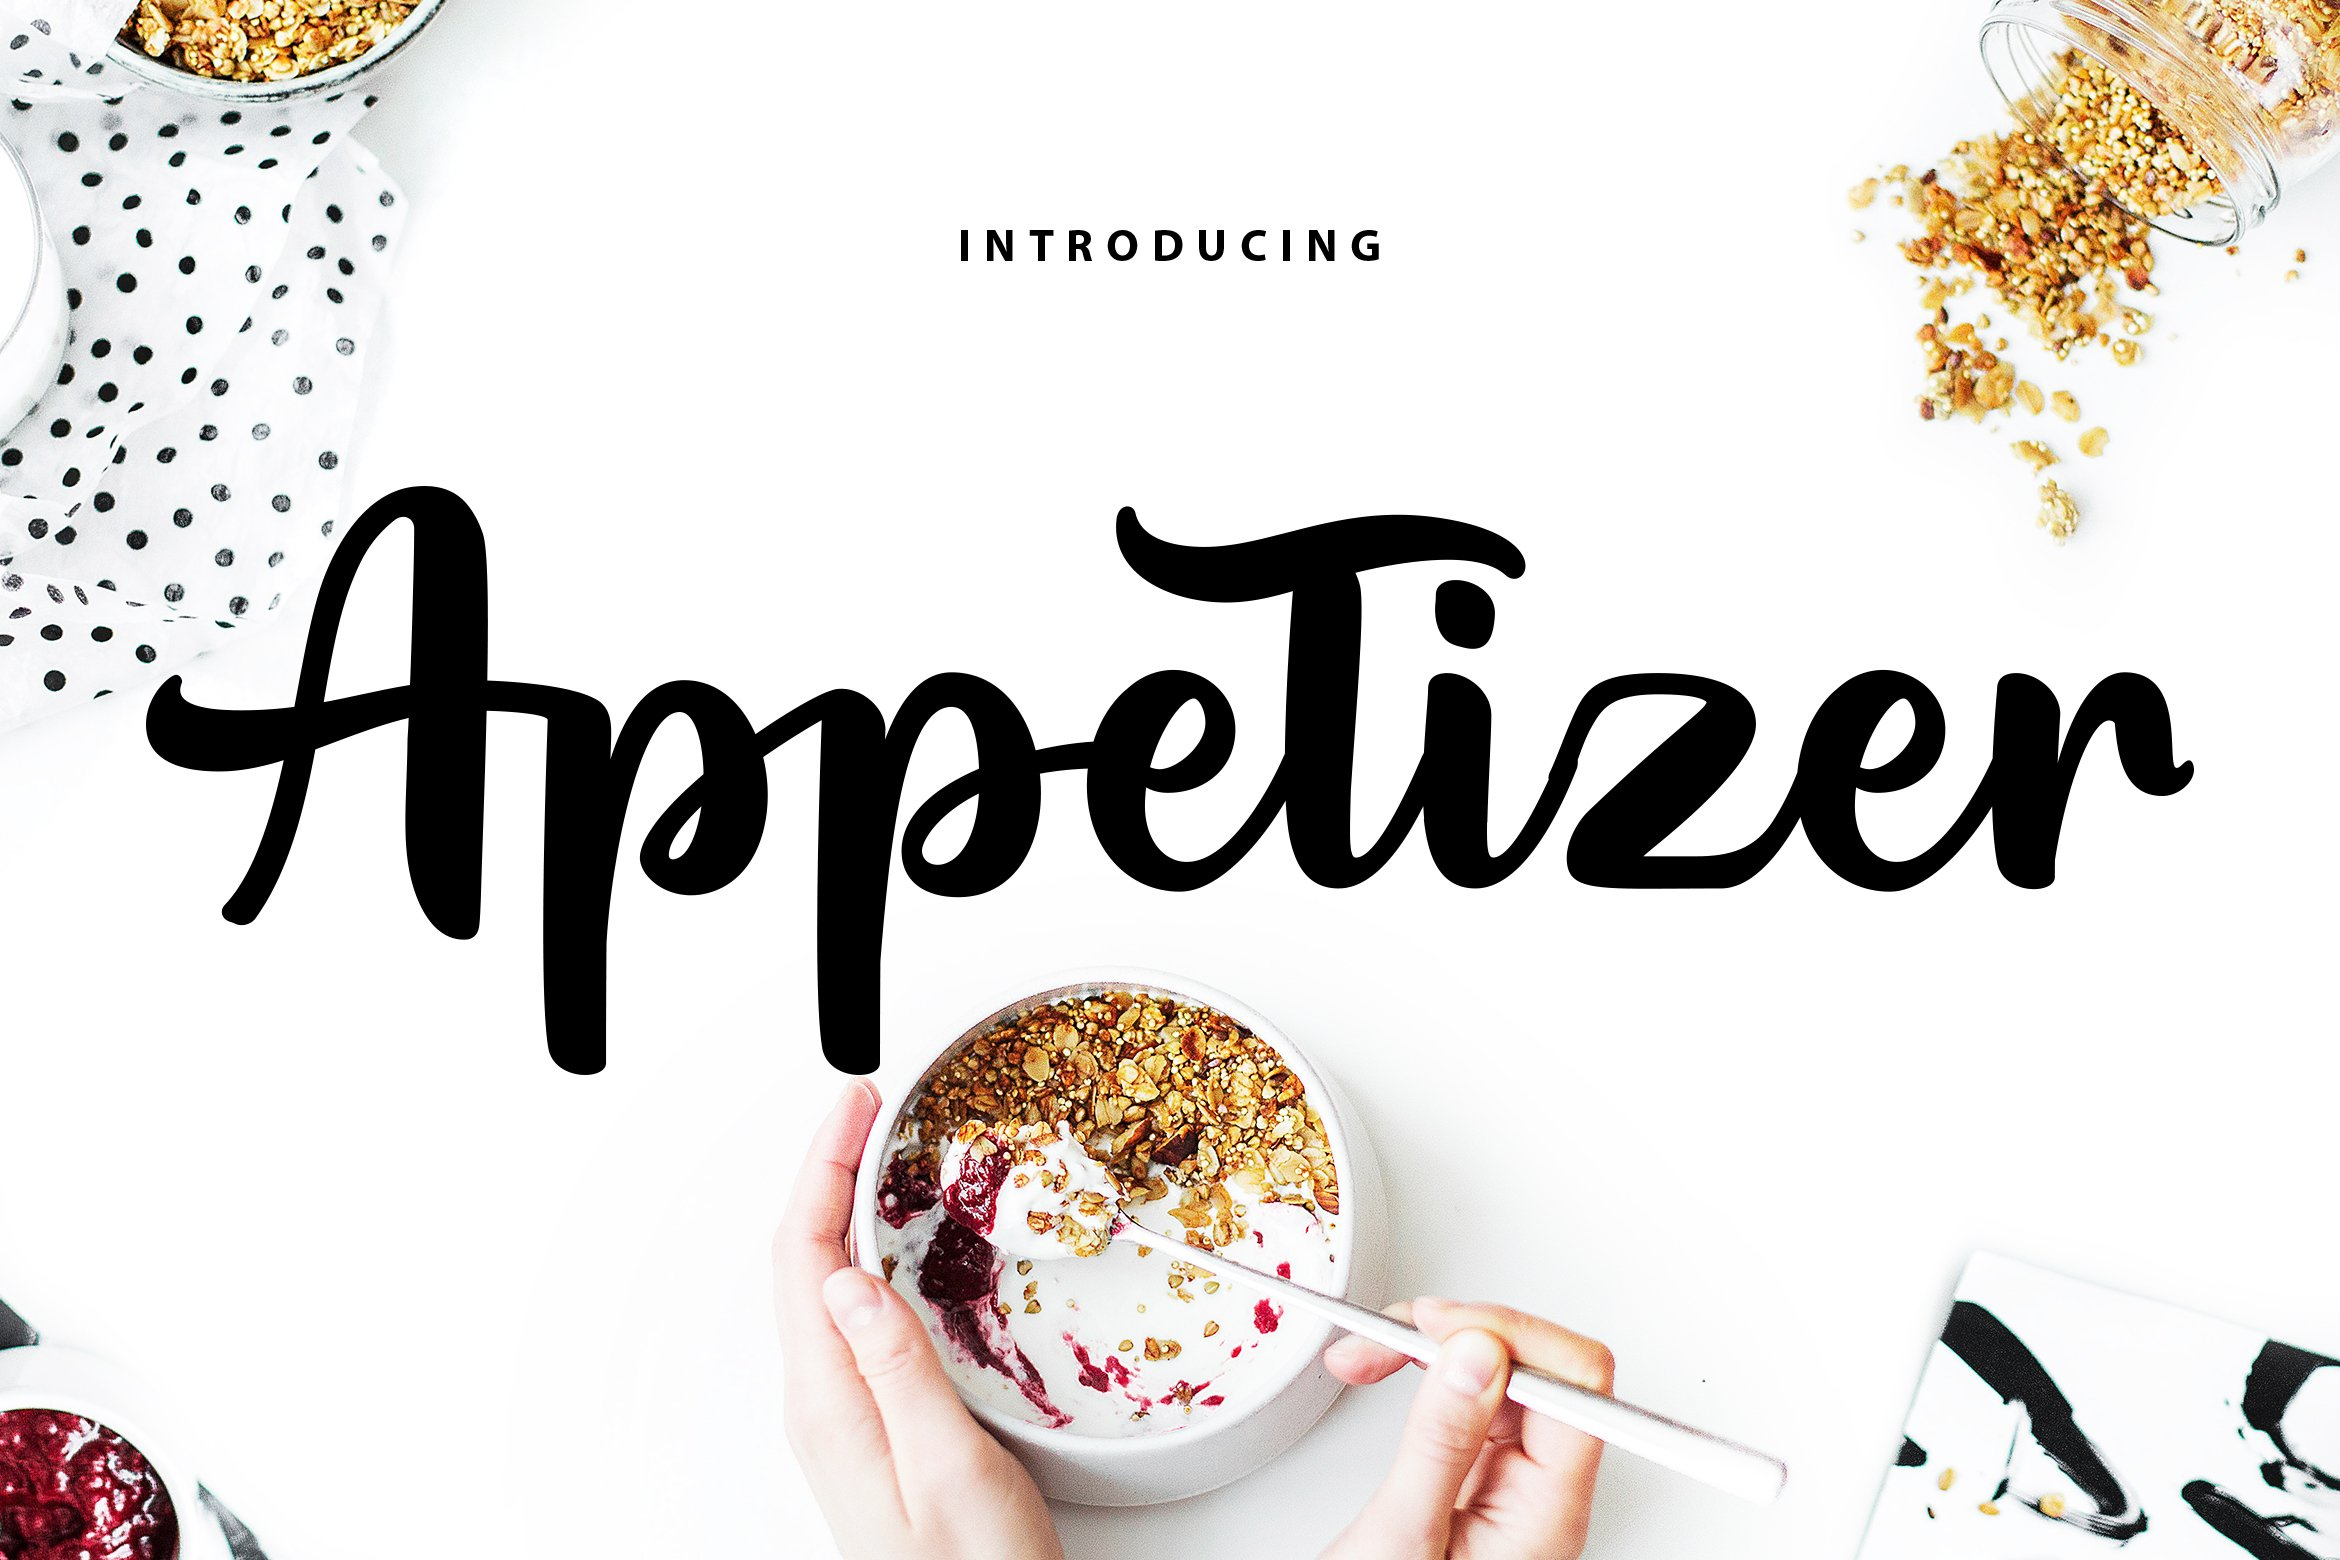 Appetizer | Modern Script Font example image 1